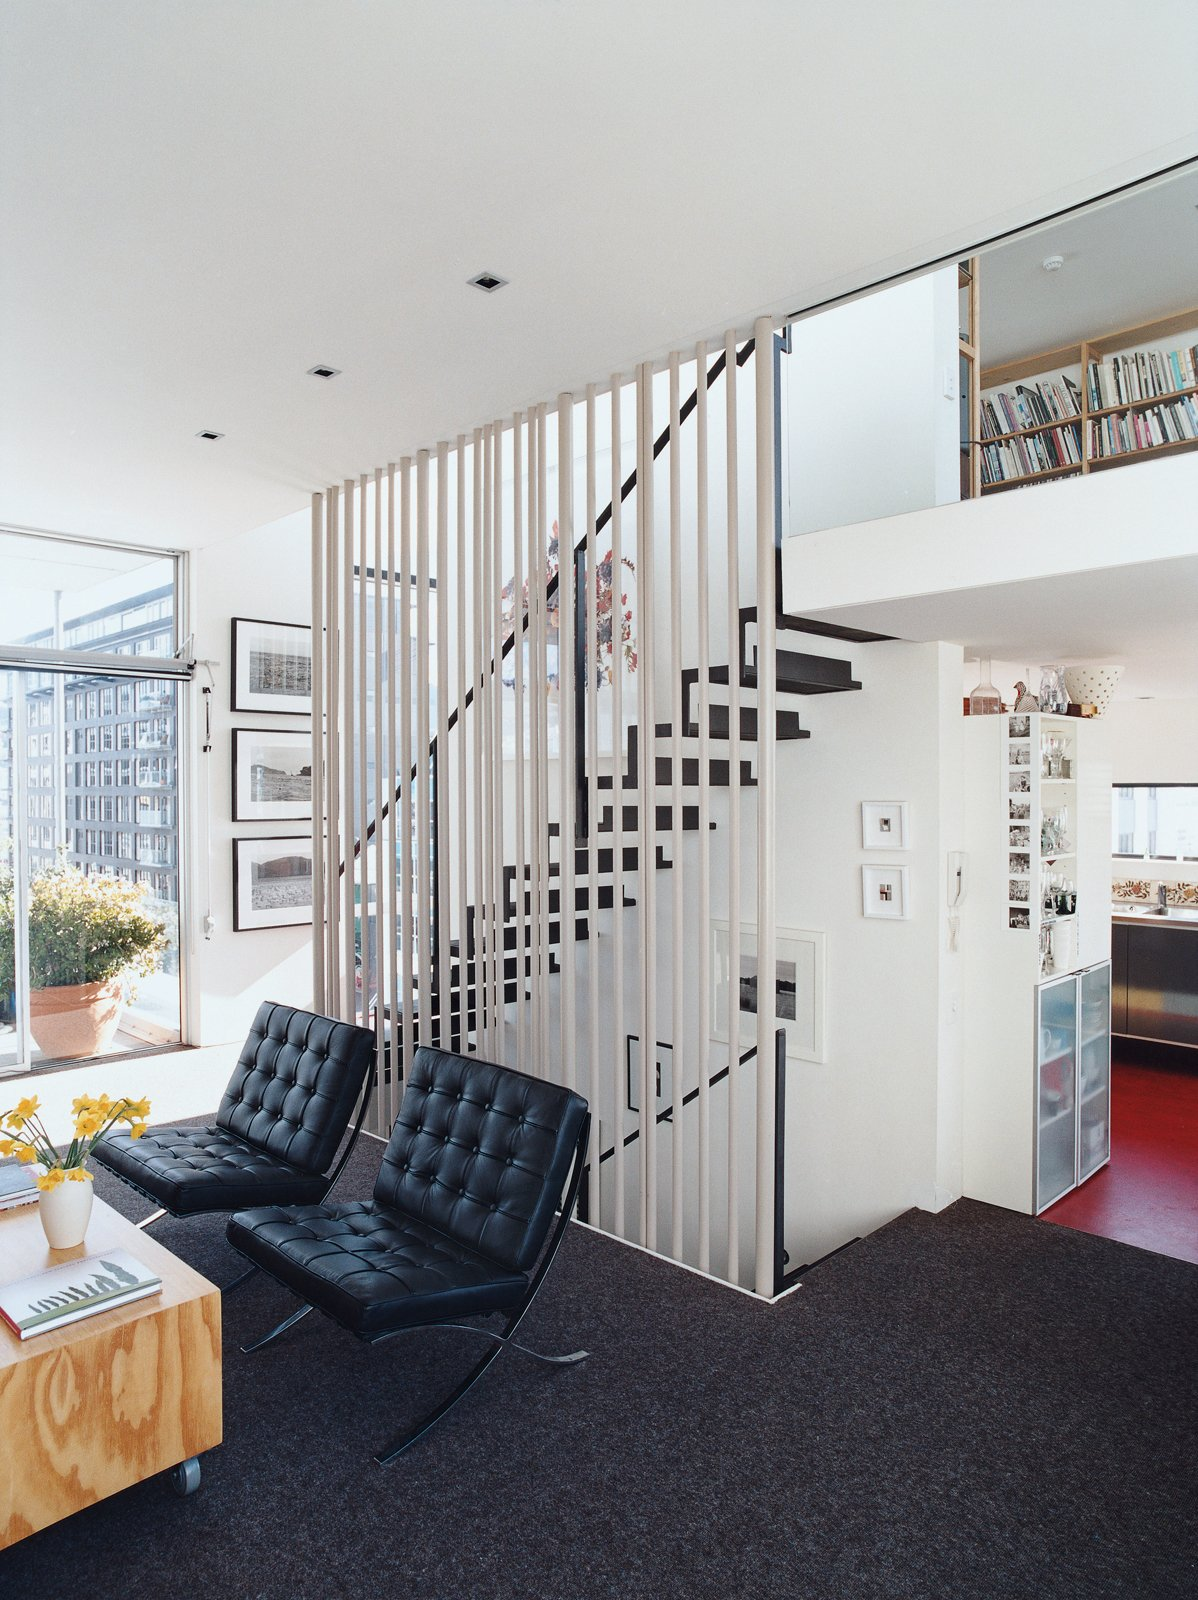 A floating steel staircase ties the living area and loft together. Variegated steel tubes provide graphic punch while maintaining the apartment's airy and open feeling. Tagged: Living Room and Chair.  Clever Loft Spaces for Small Places by Diana Budds from Rising Above It All